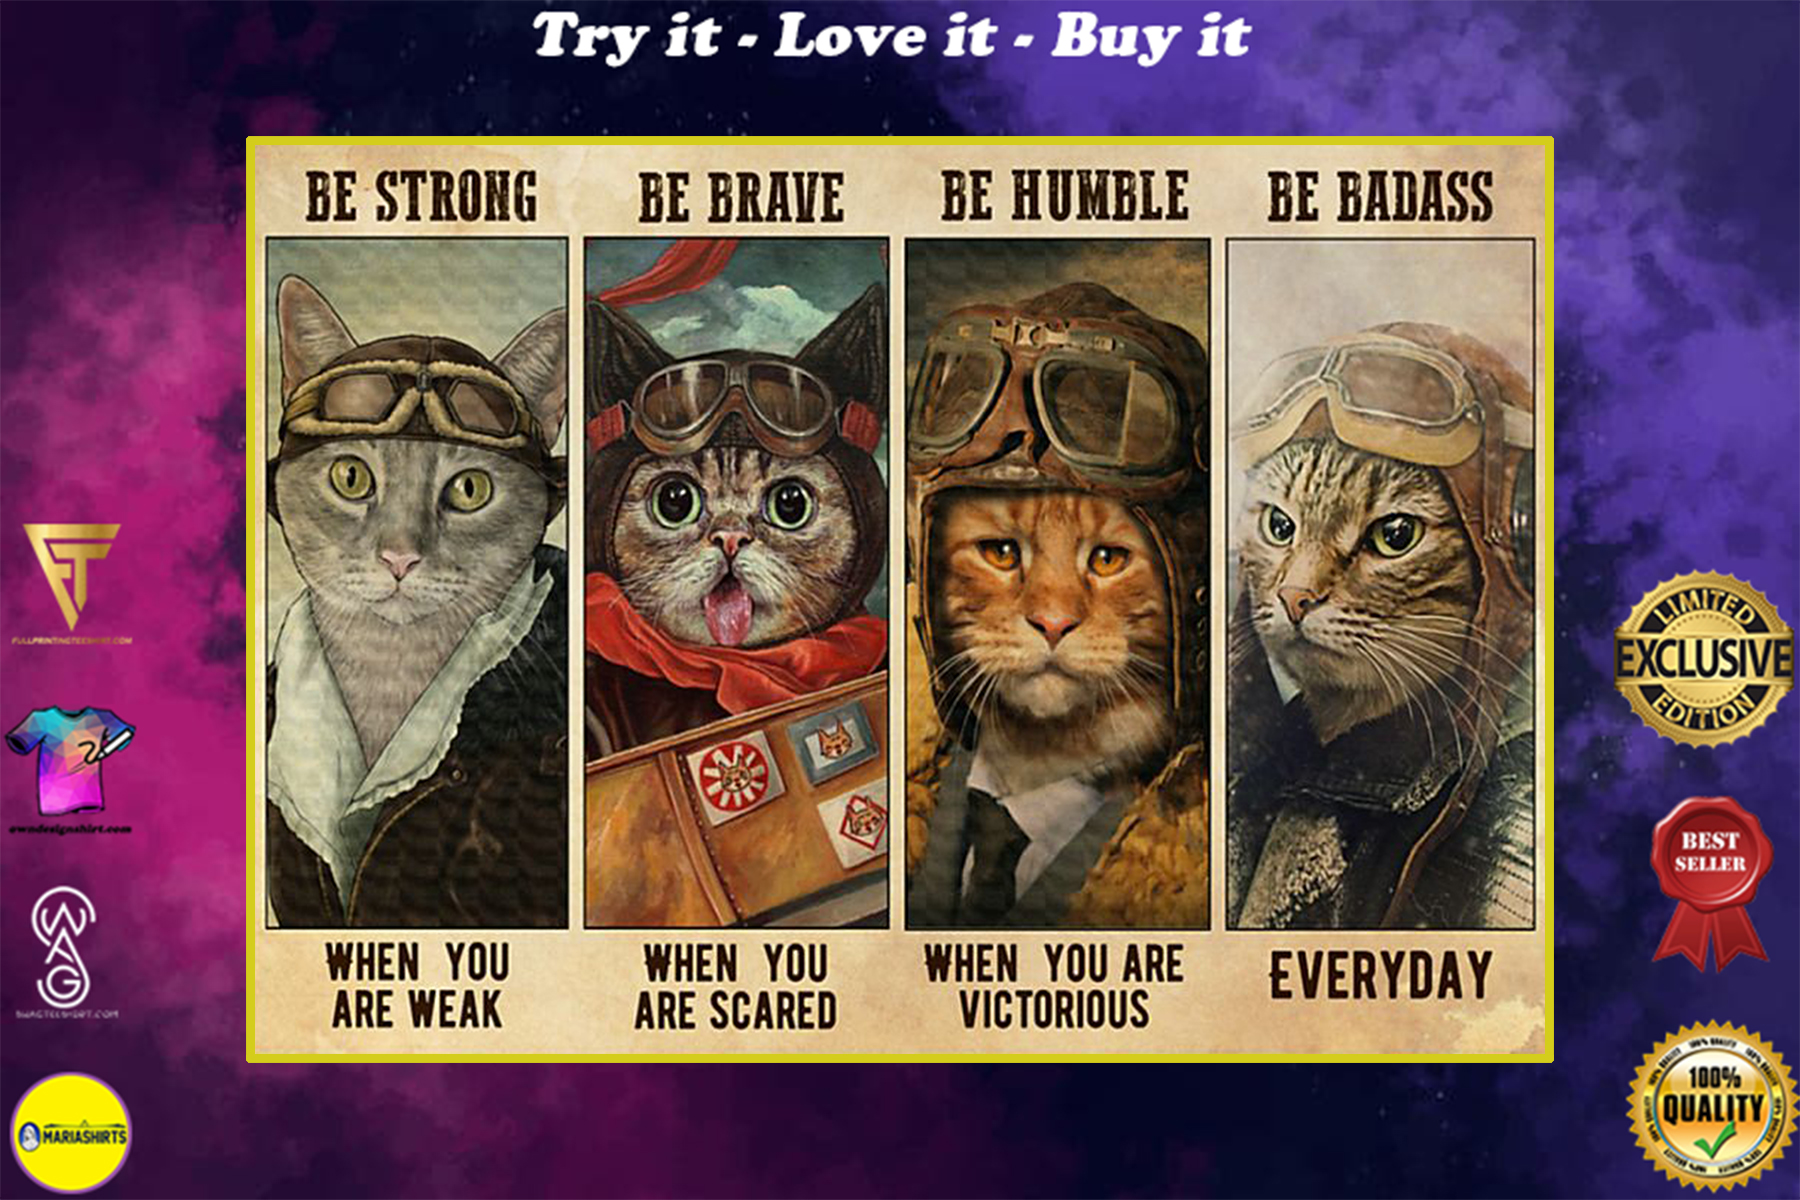 vintage cat pilot be strong when you are weak be brave when you are scared poster